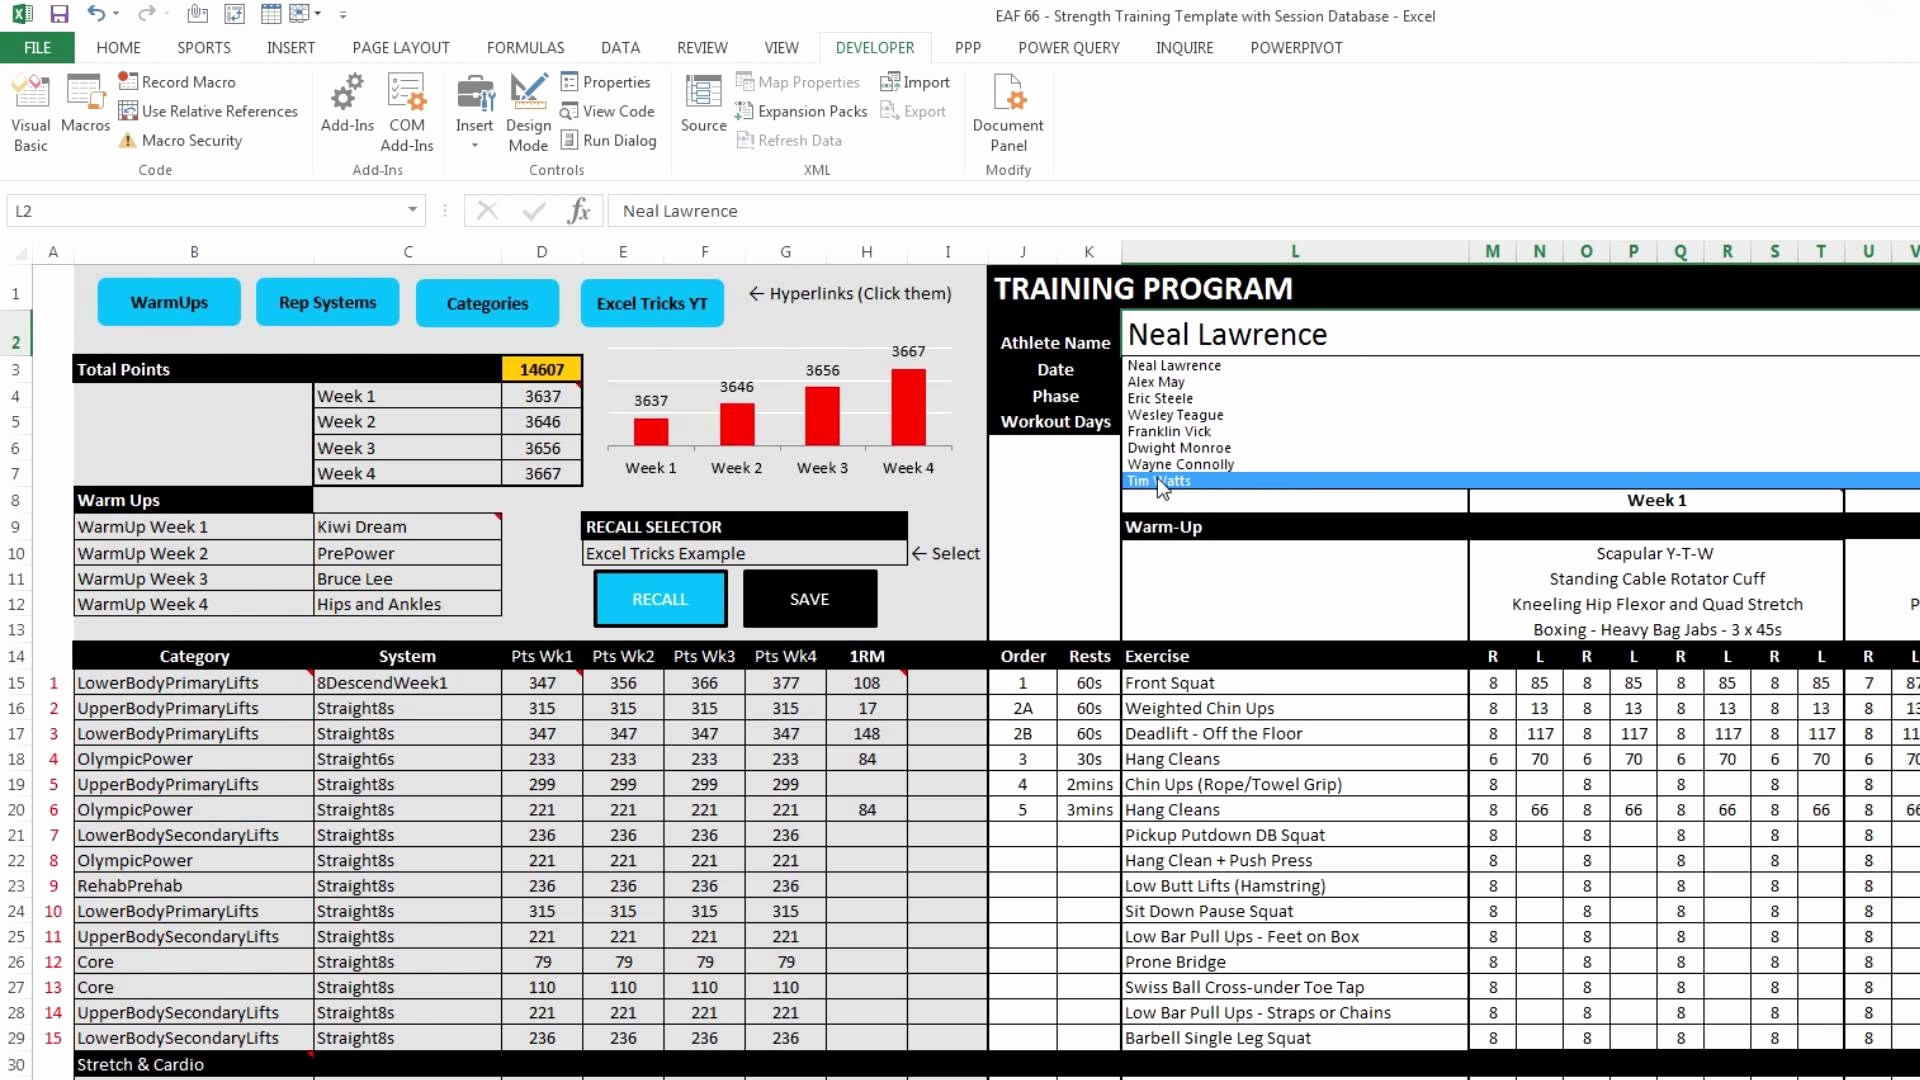 50 Inspirational Excel Crm Template Software - Document Ideas With Crm In Excel Template